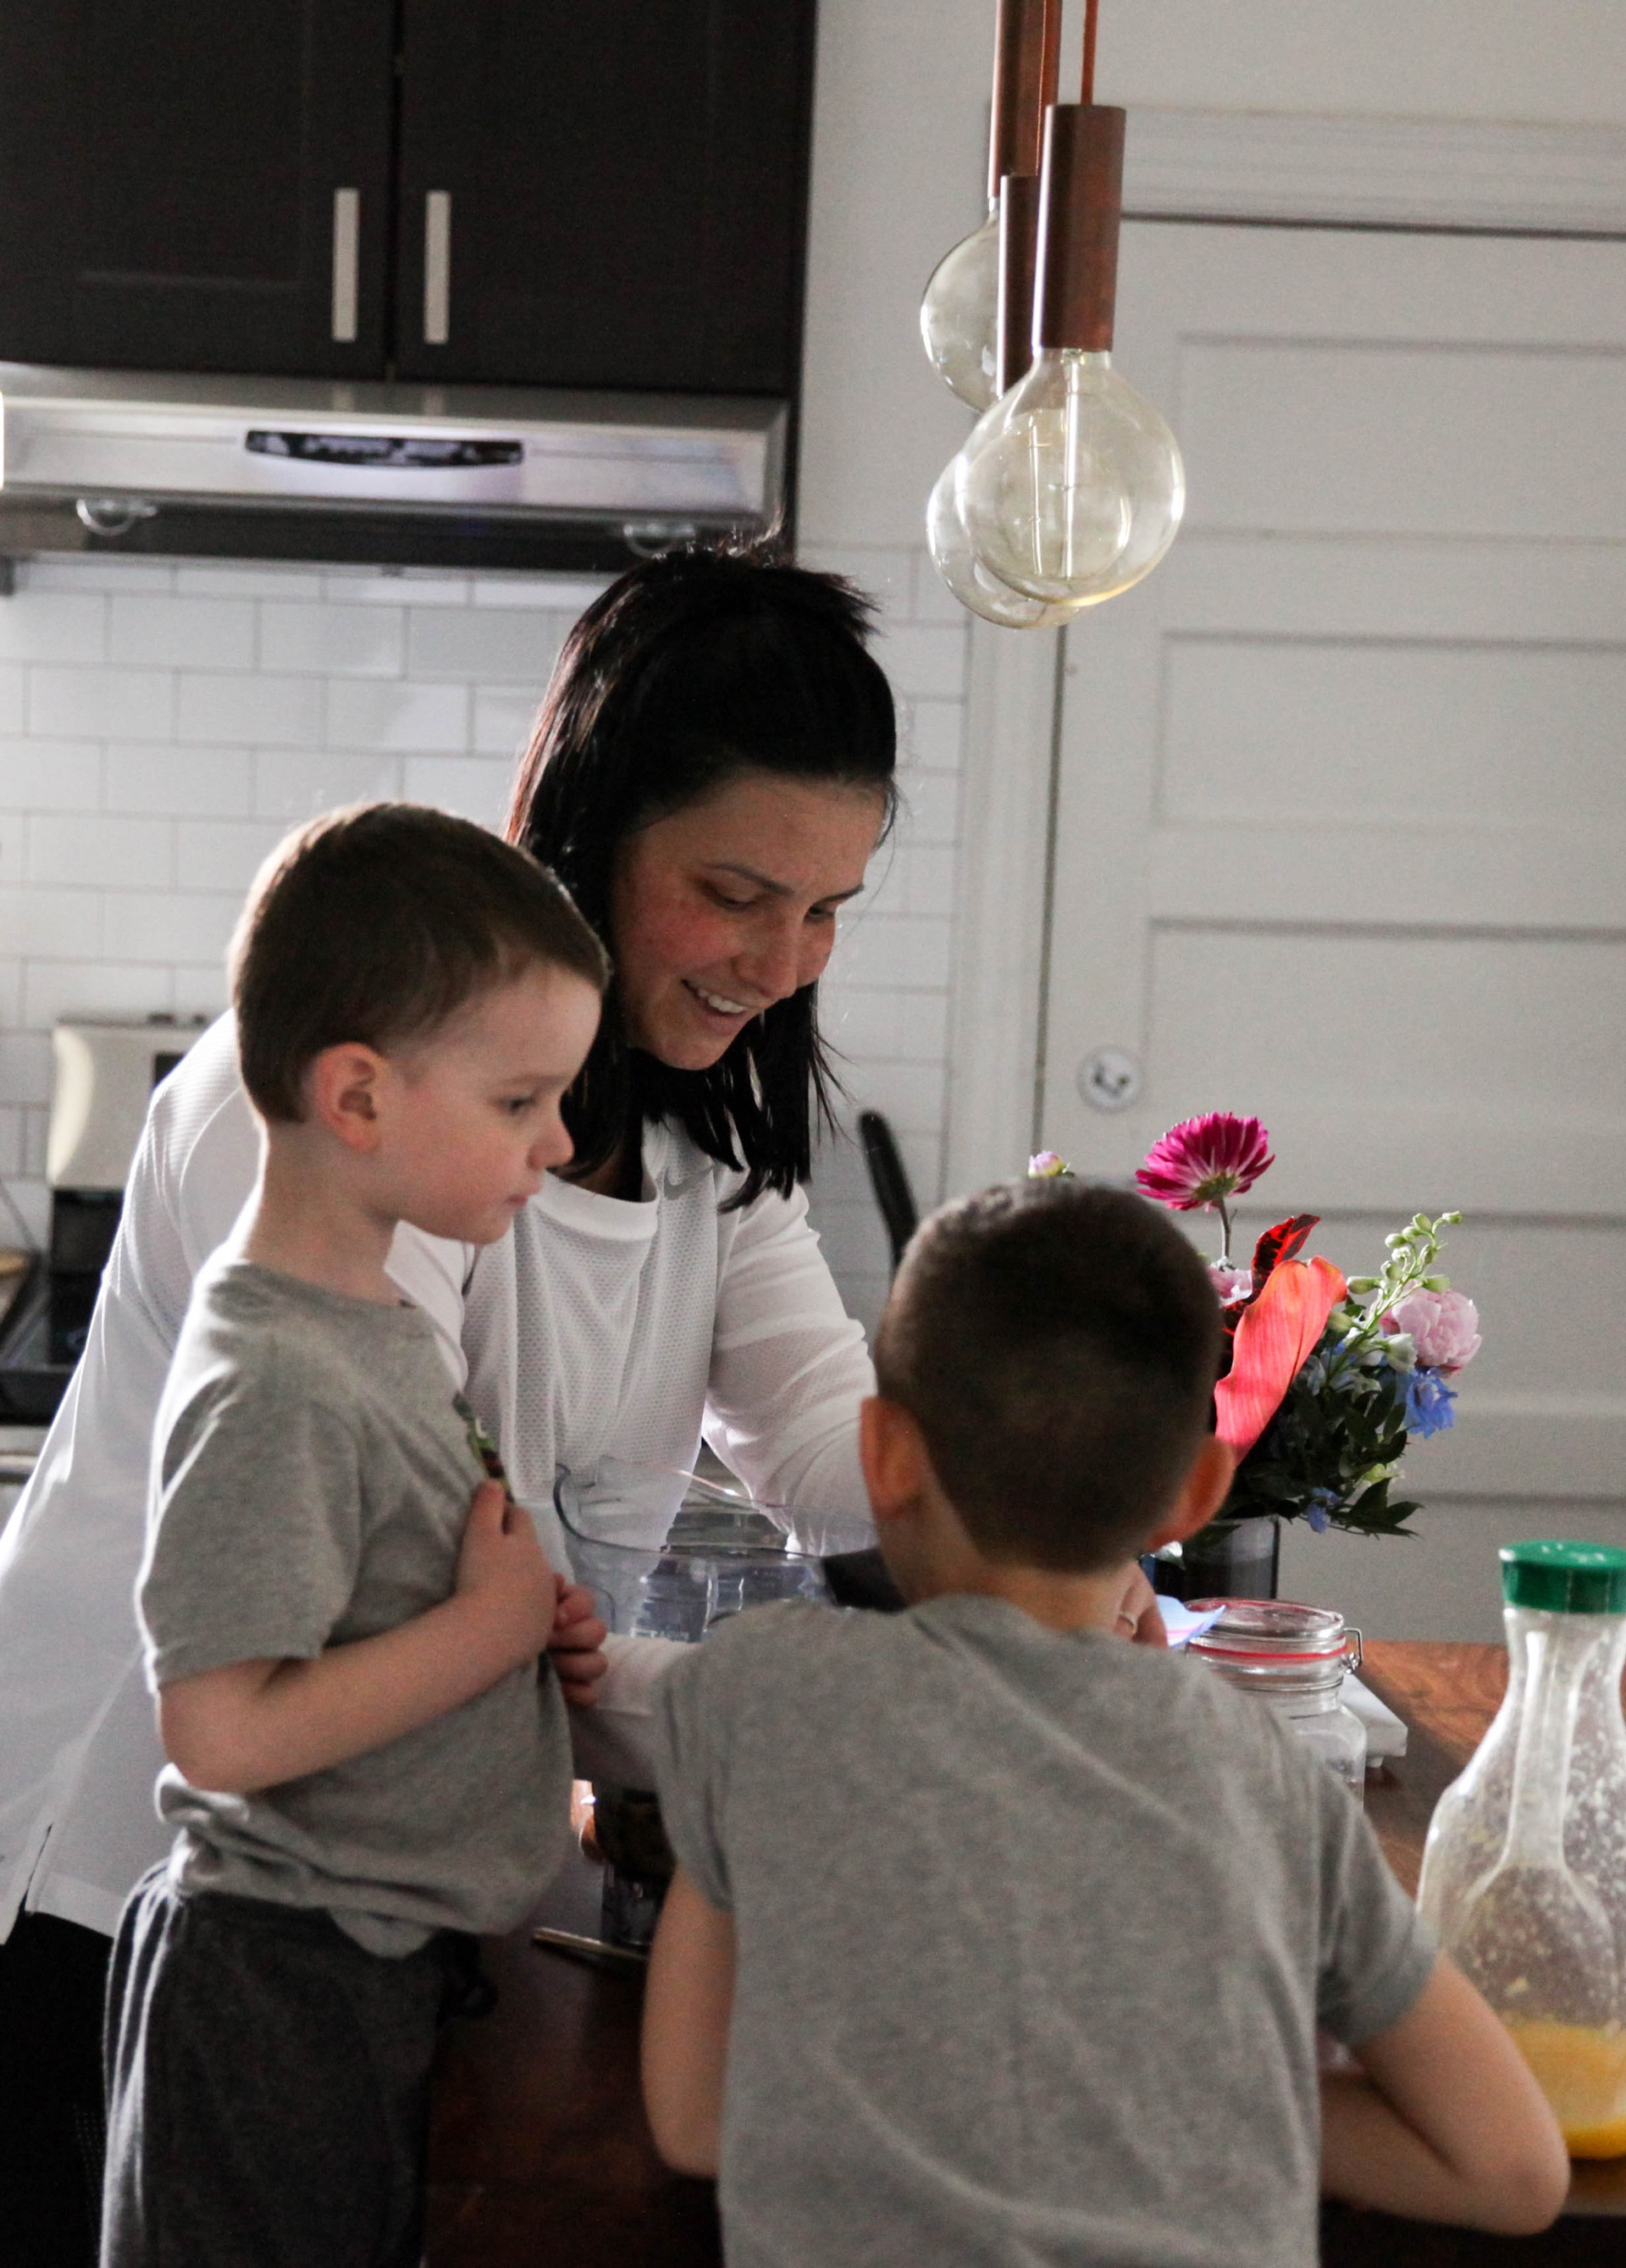 making-smoothies-with-kids